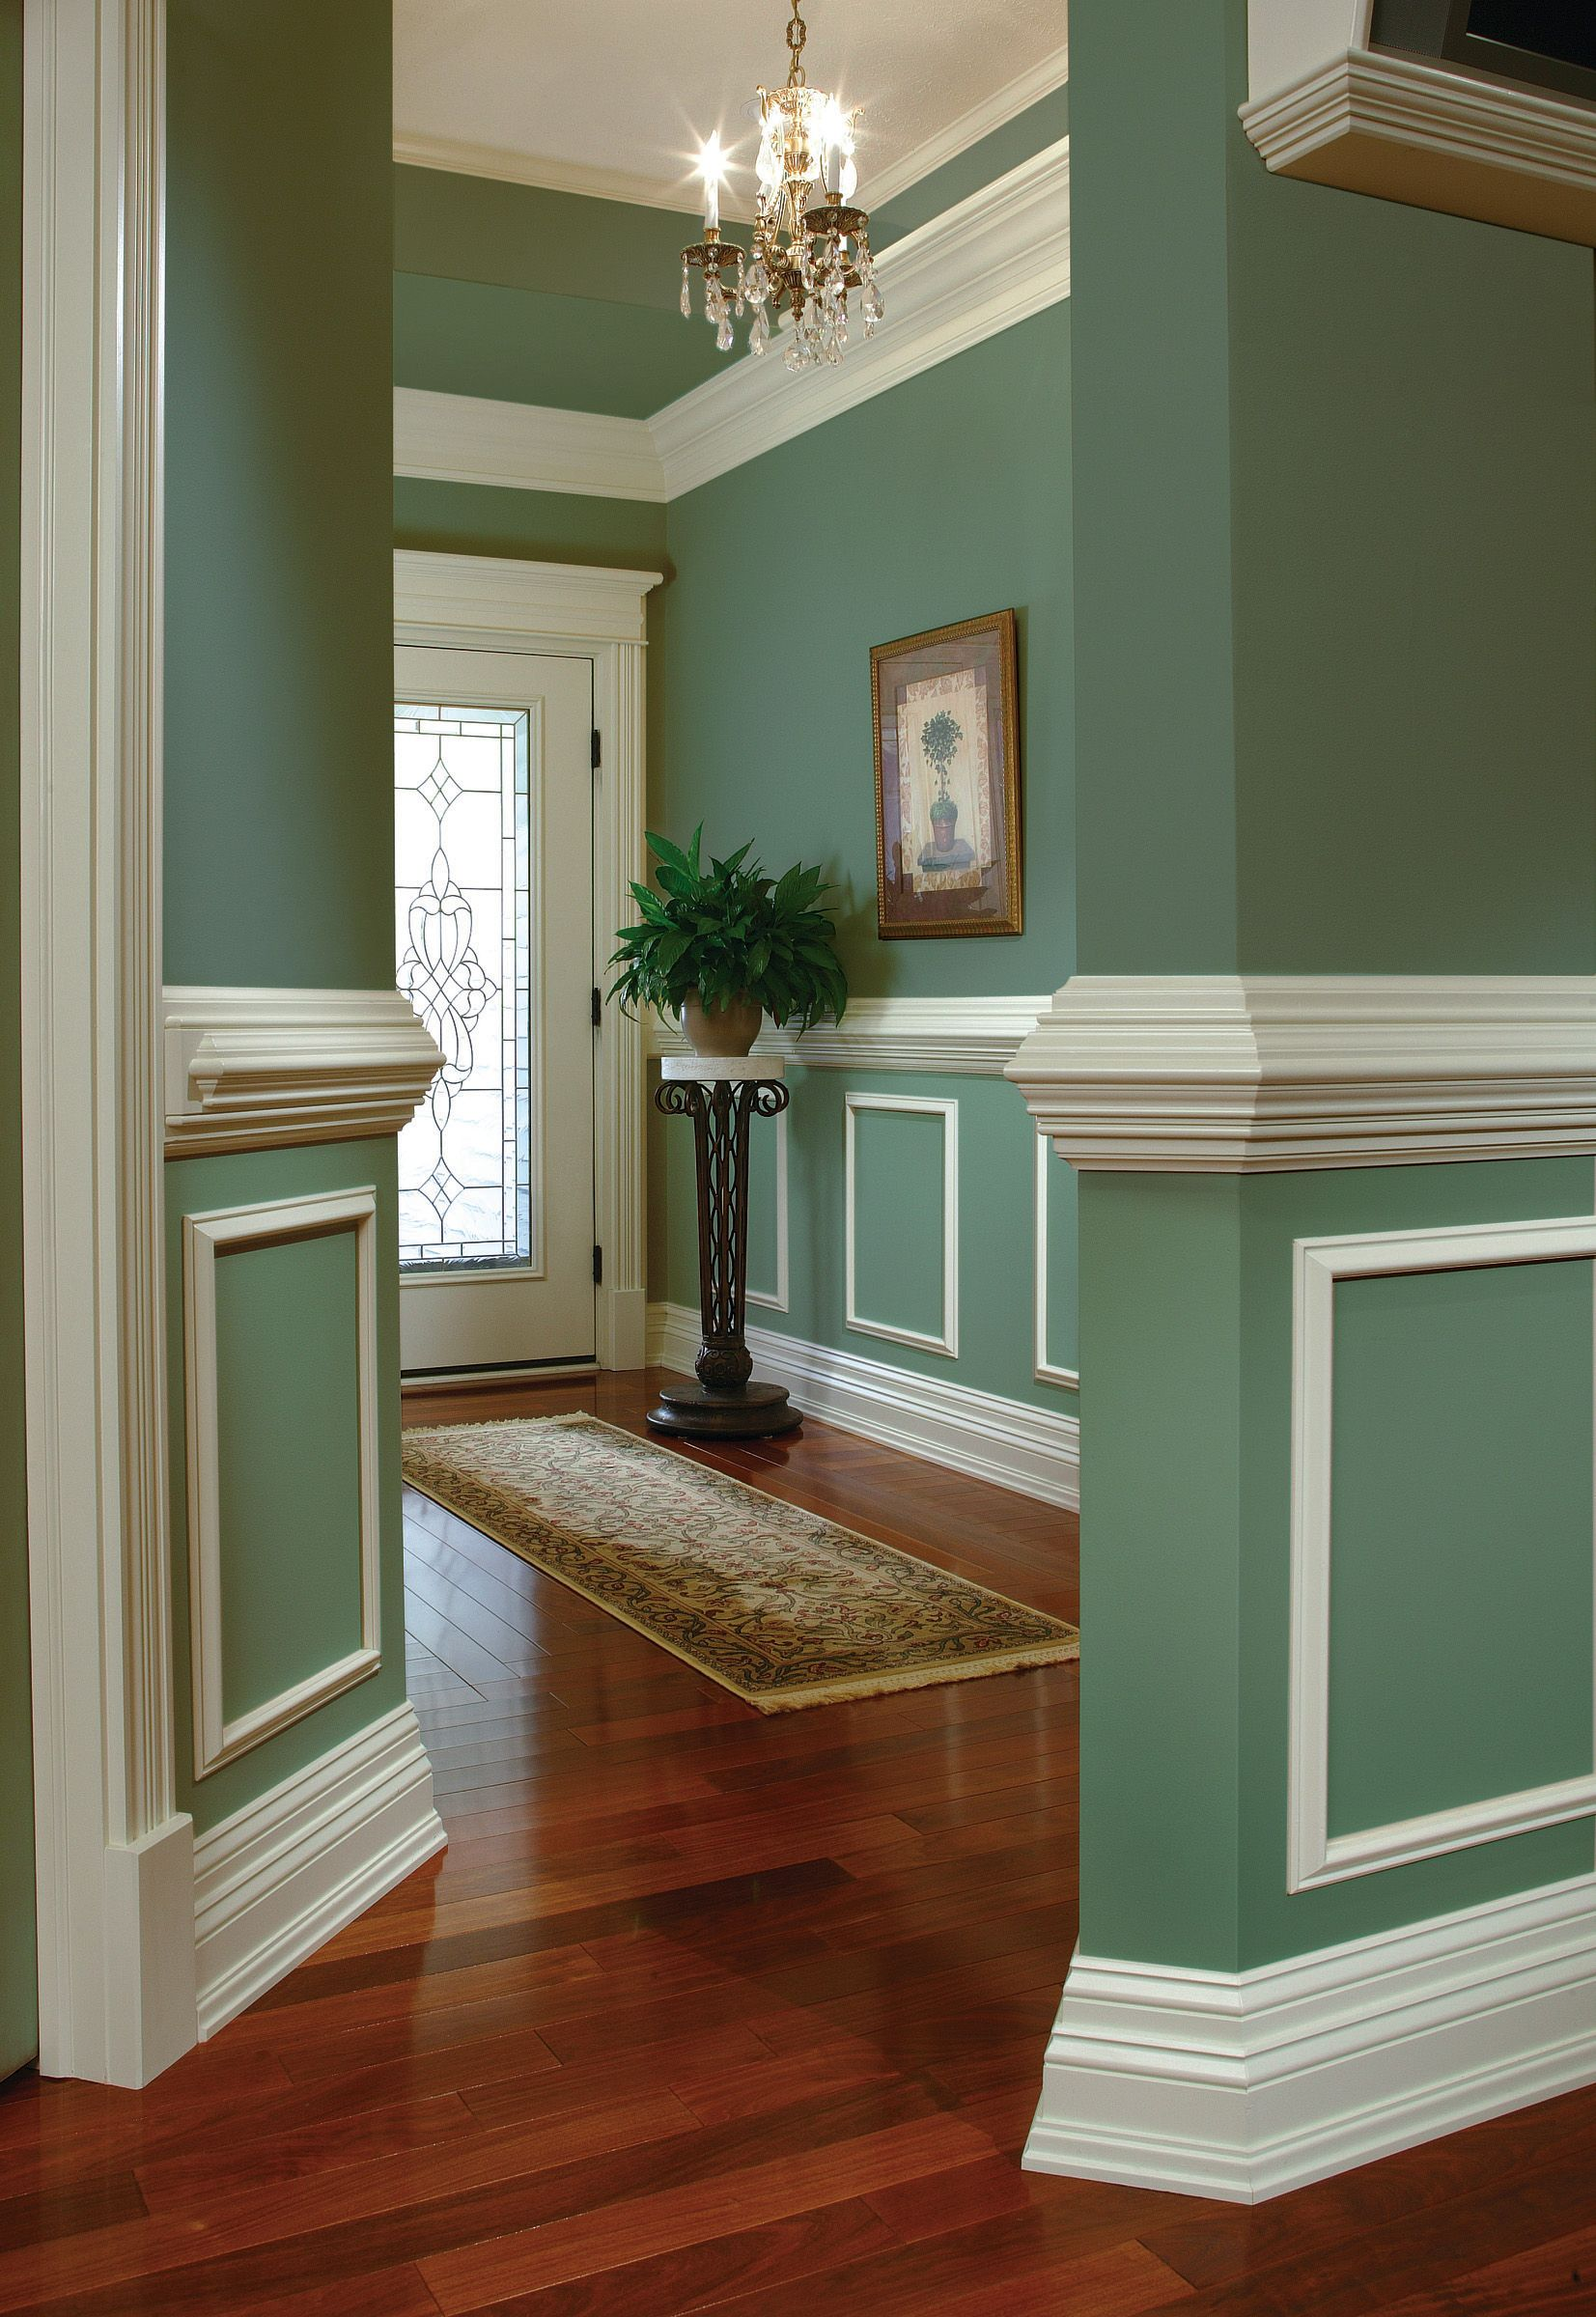 Pin By Larry Bruno On House Ideas House Design Wall Molding Design Home